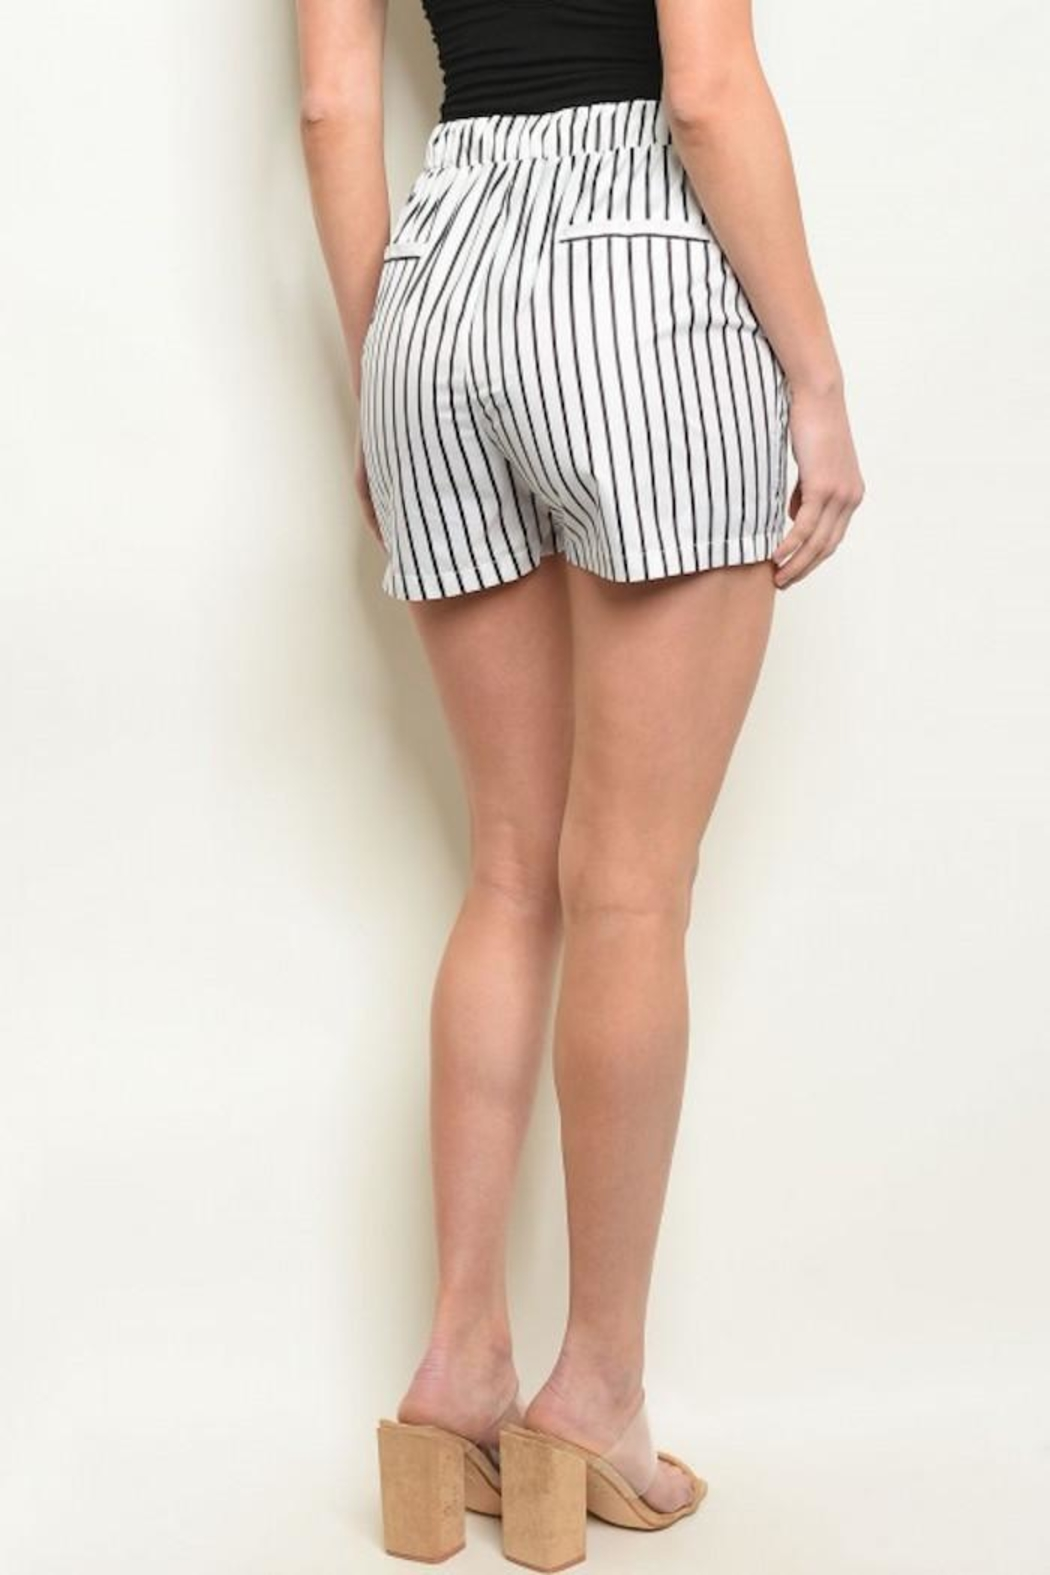 Compendium Striped Board Shorts W/ Pockets - Front Full Image